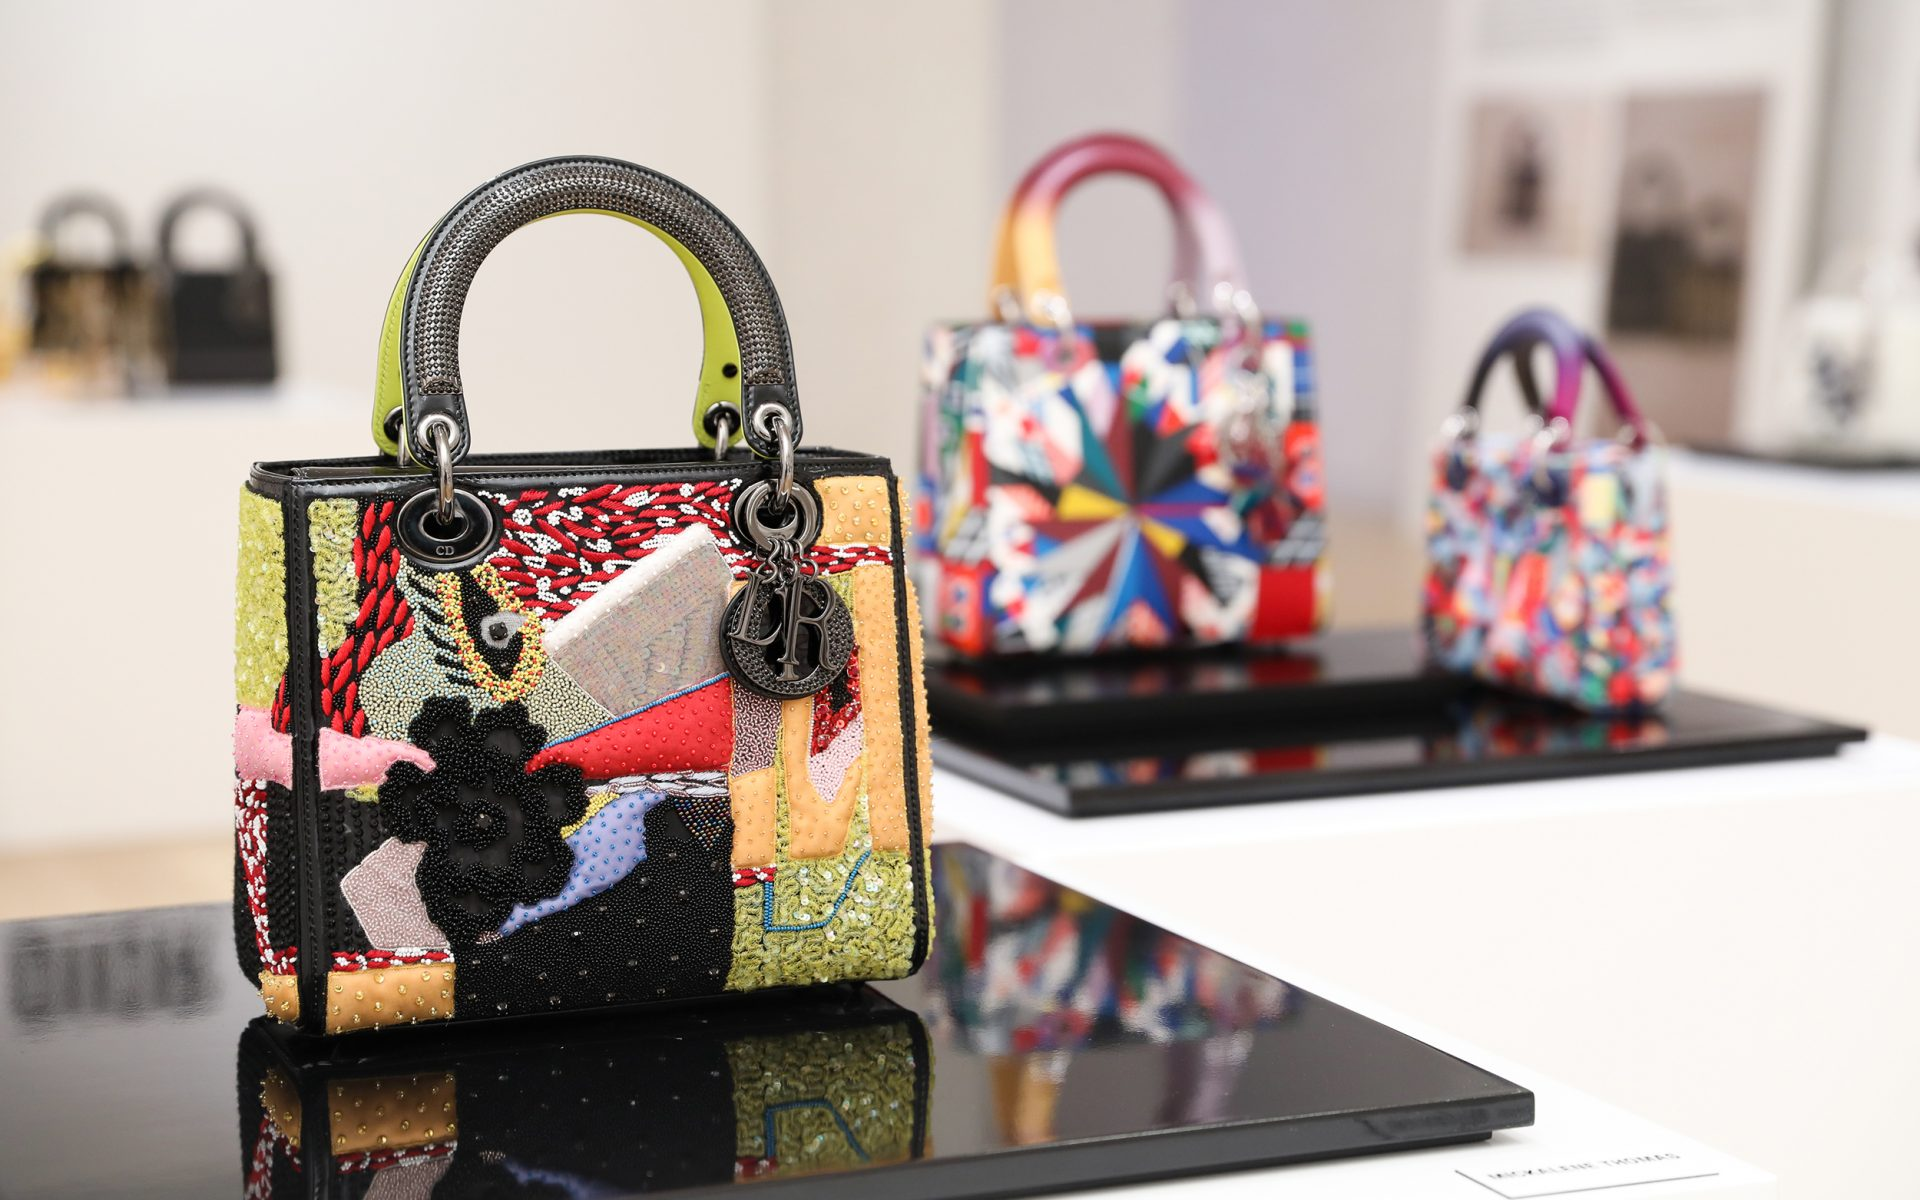 Dior Enlists 11 Women Artists to Create Chic New Handbag Collection ... 6d42abebfef75